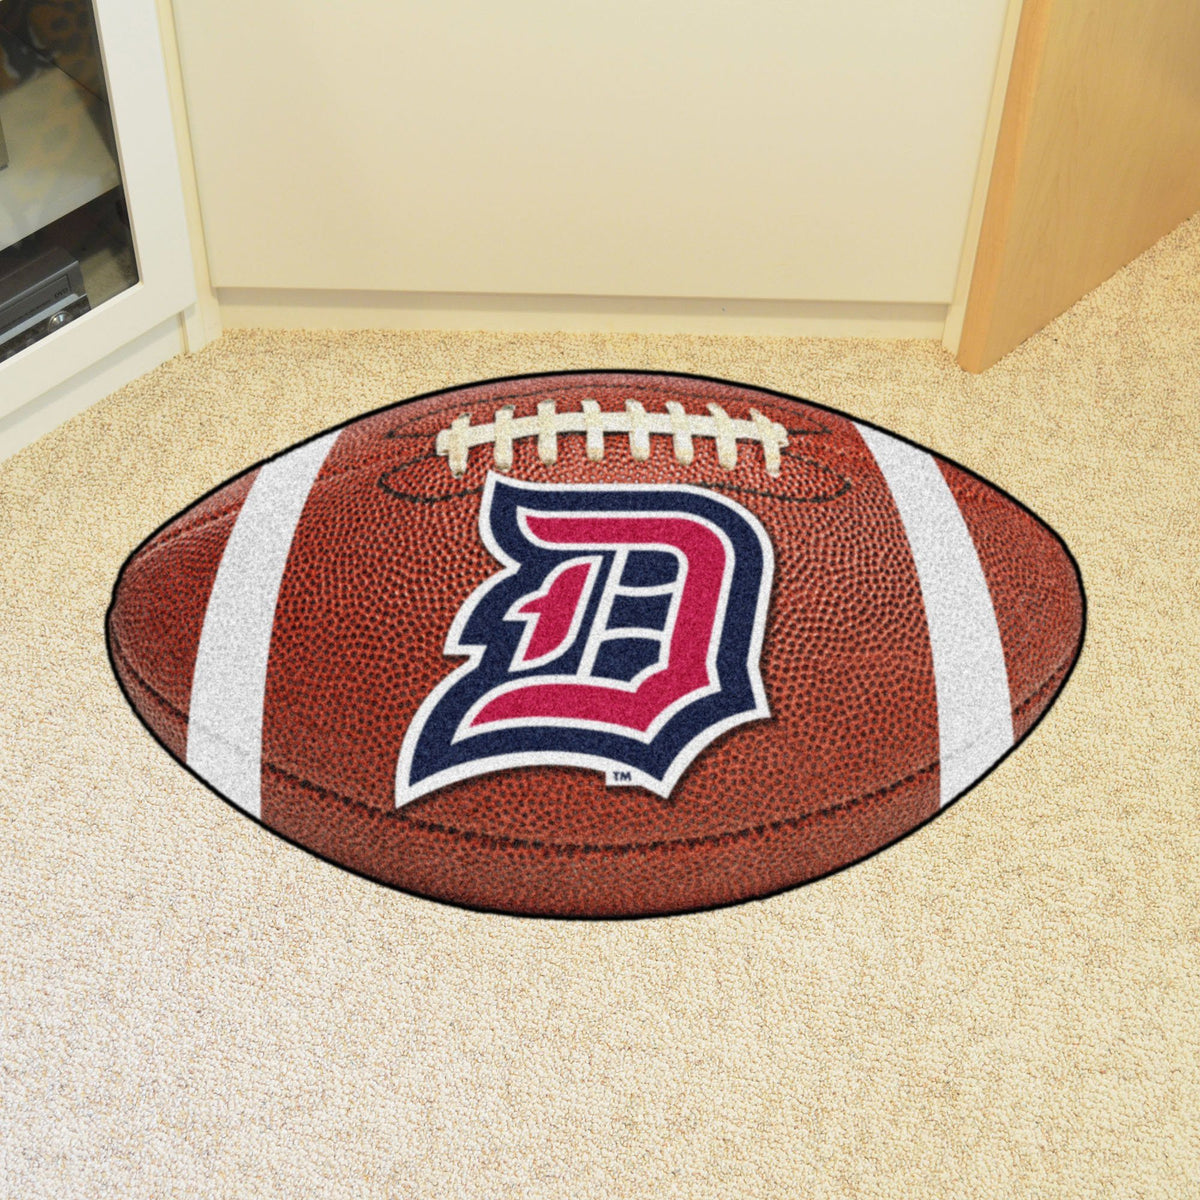 Collegiate - Football Mat: A - K Collegiate Mats, Rectangular Mats, Football Mat, Collegiate, Home Fan Mats Duquesne